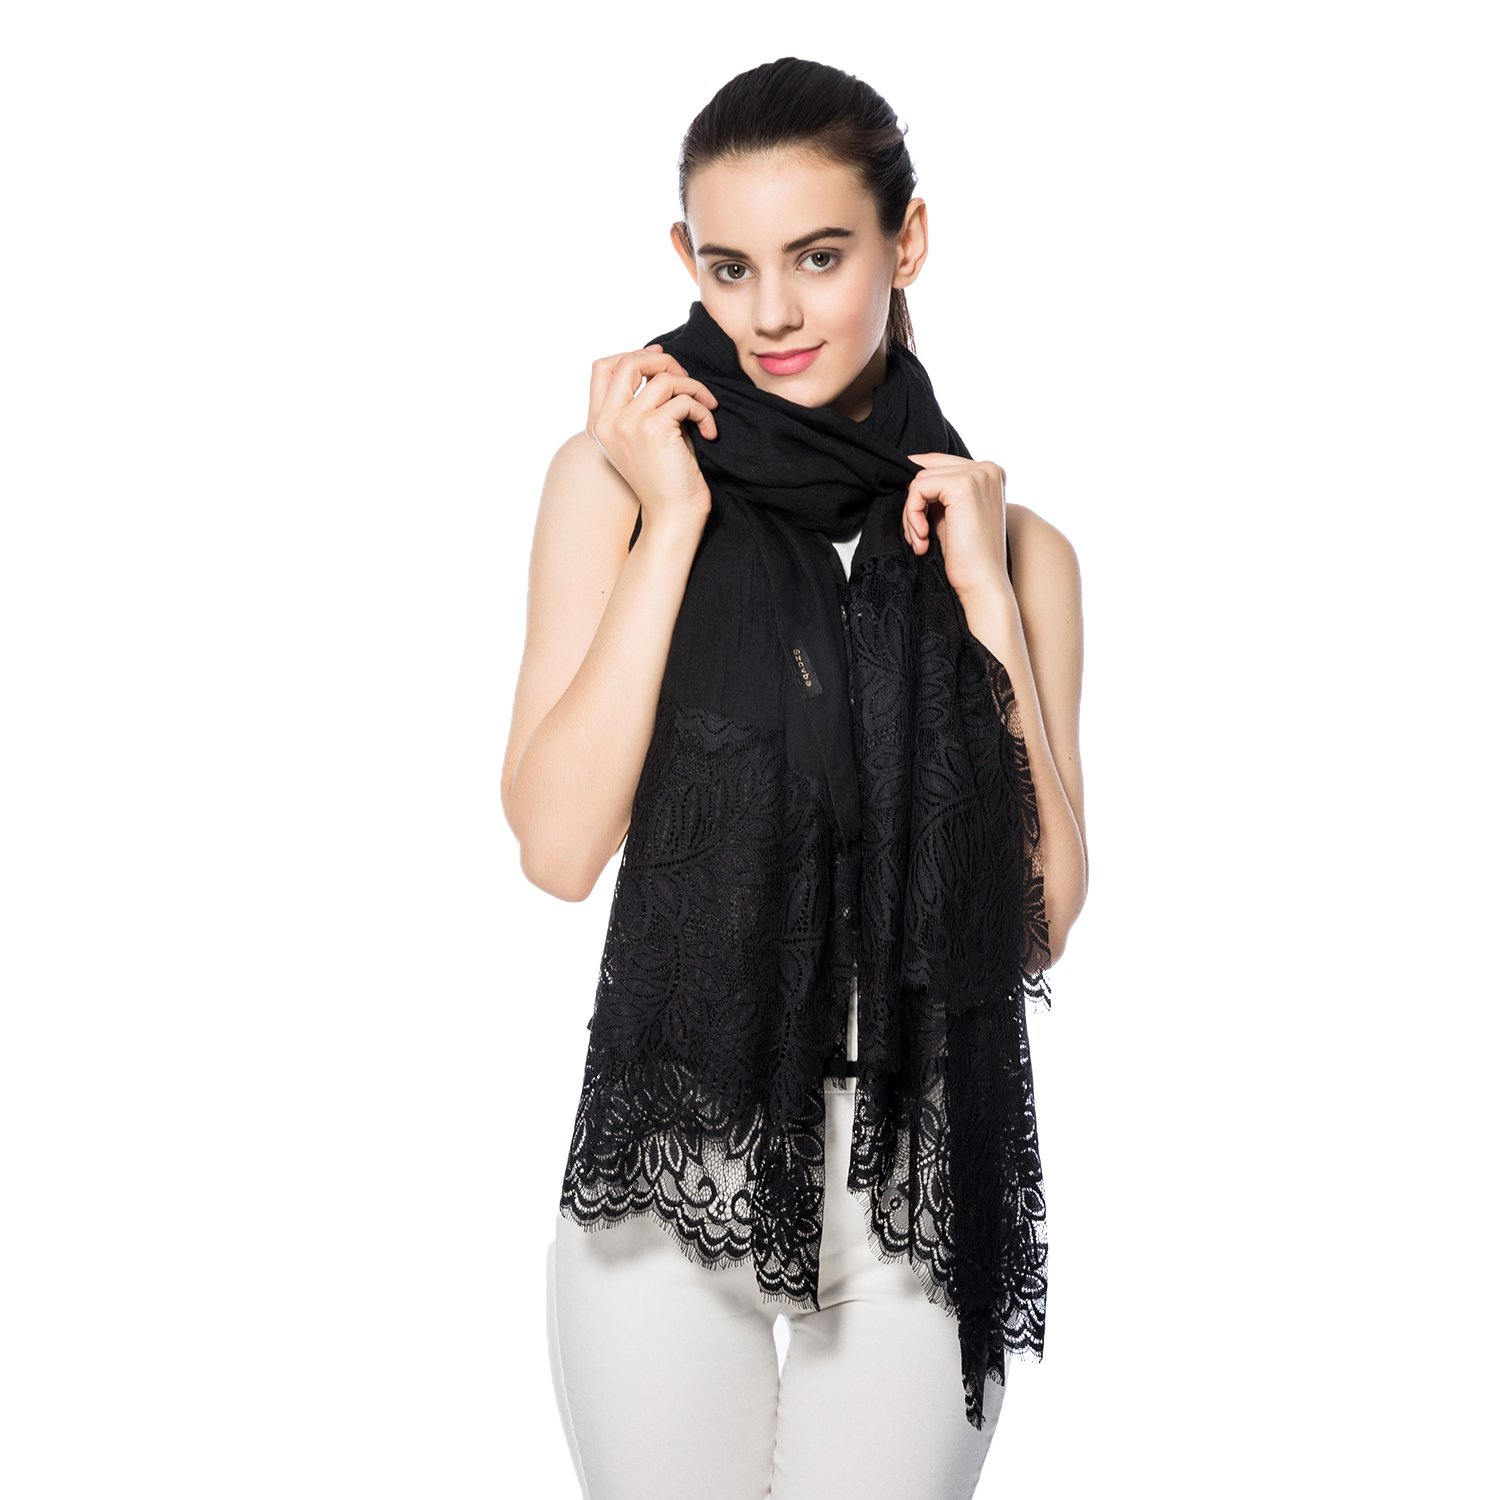 Women Lightweight Fashion Lace Scarf Winter Wrap Shawl Gzcvba Soft Evening Coverup (Black)